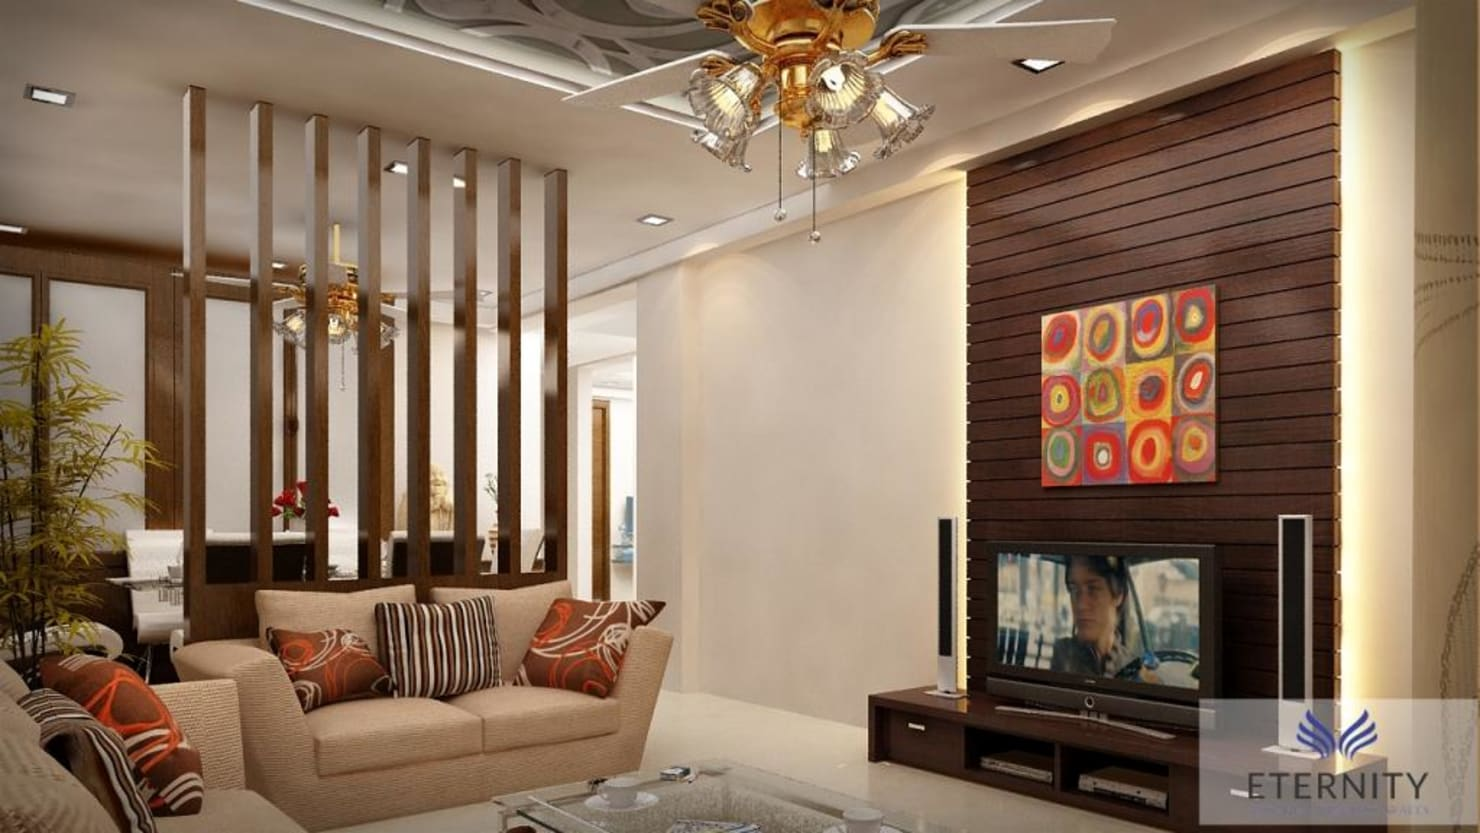 How to use LED lights for home interiors